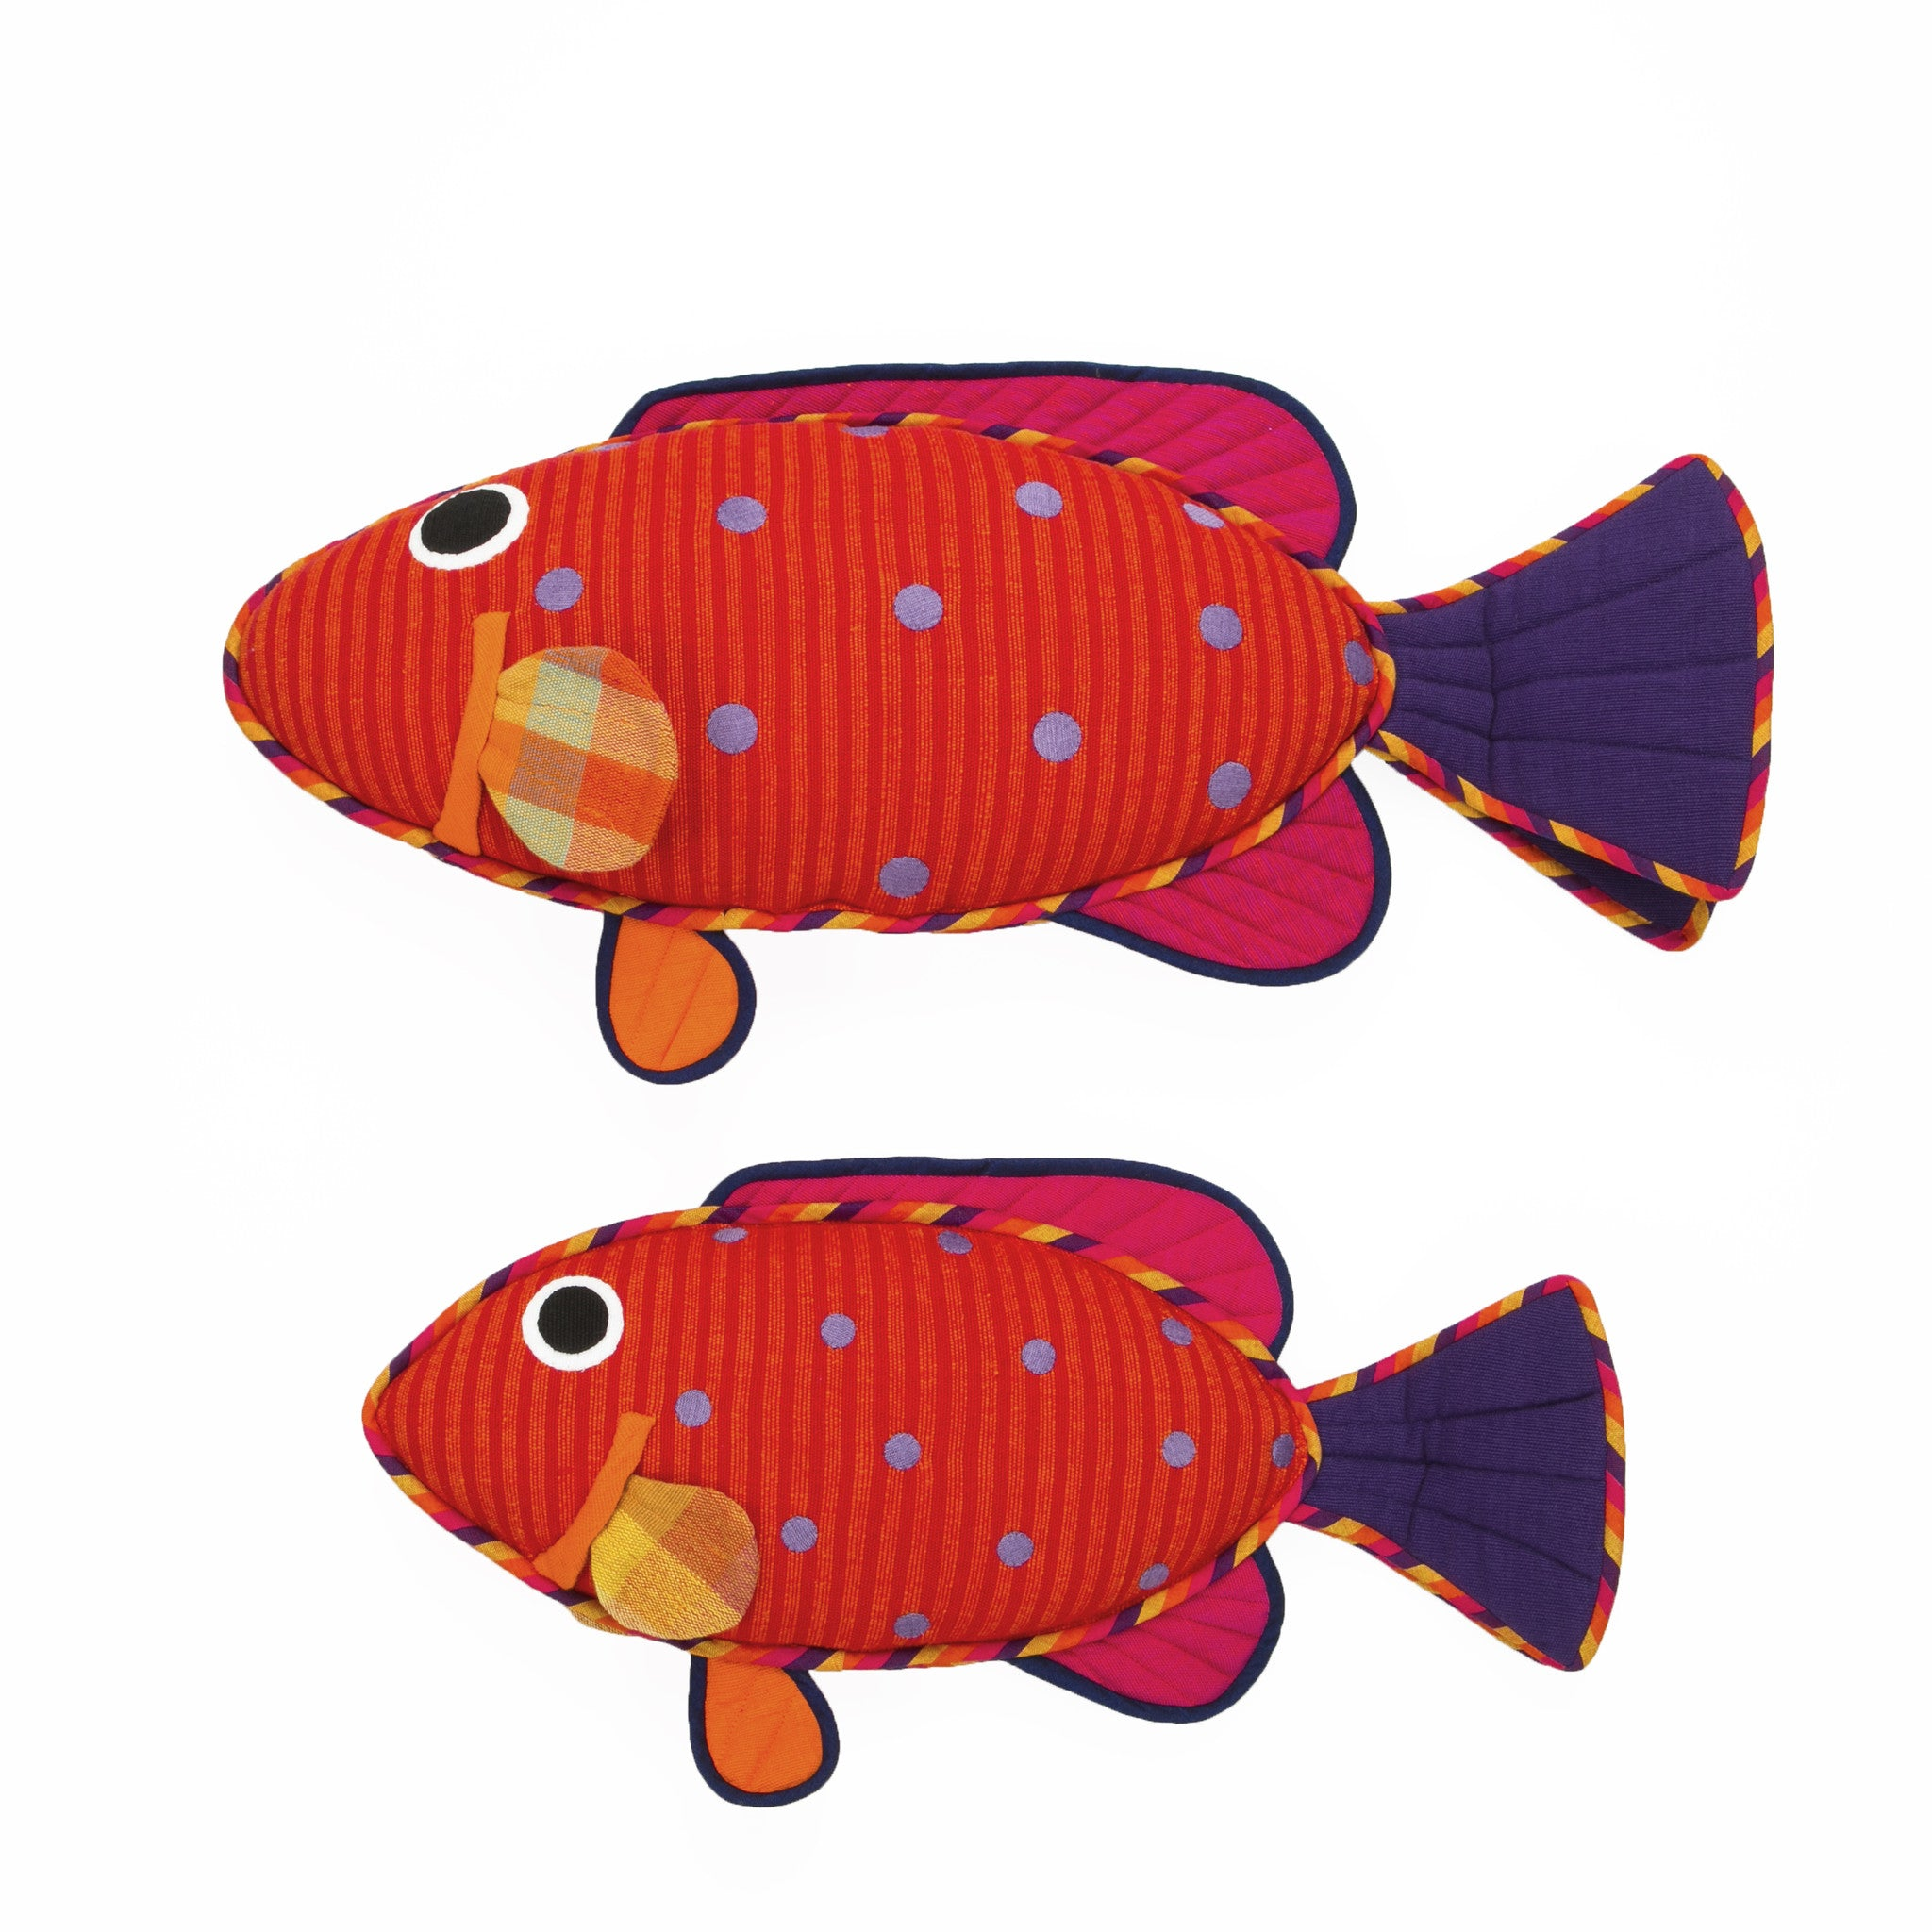 Fish Pillow - Emma, the Vermillion Rock Cod Fish Pillow by Barefoot